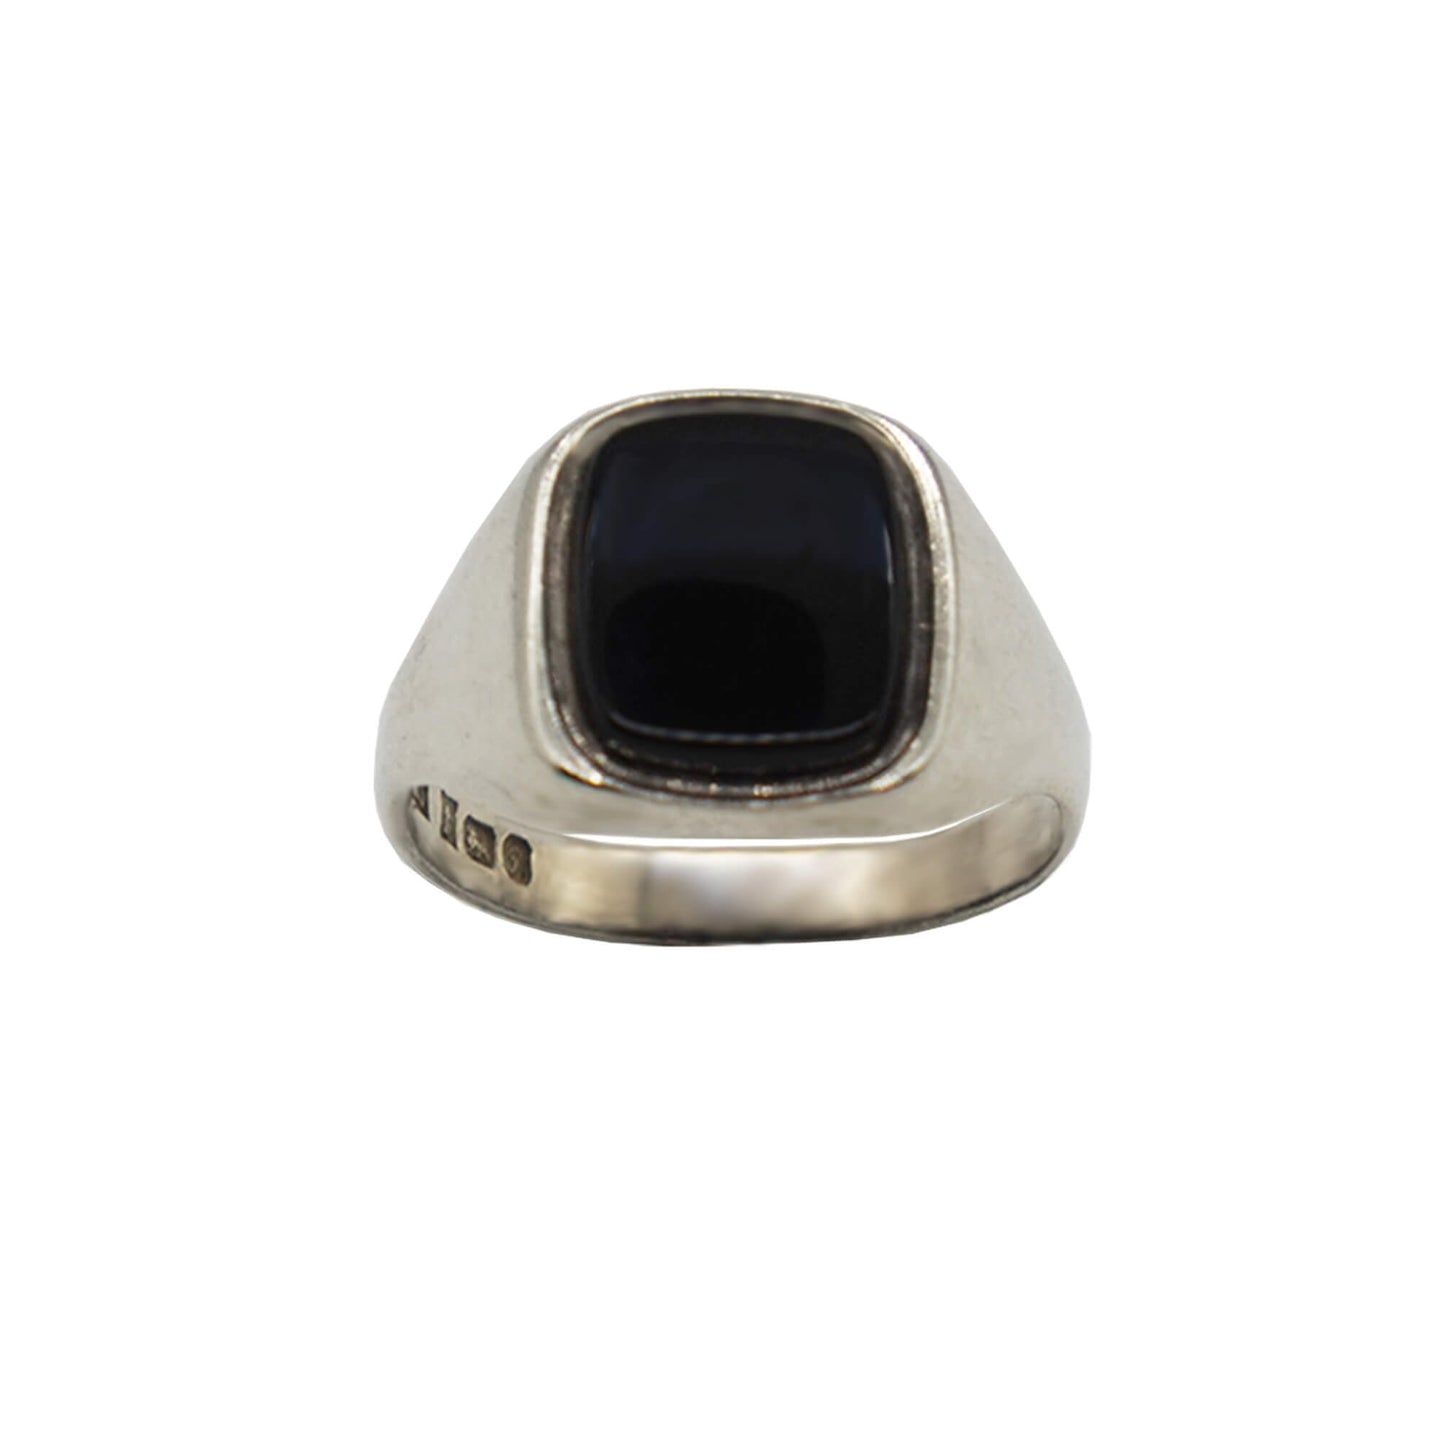 Close up Vintage Sterling Silver Ring with rounded corners rectangle black onyx stone. Hallmarks on inner band, background white.